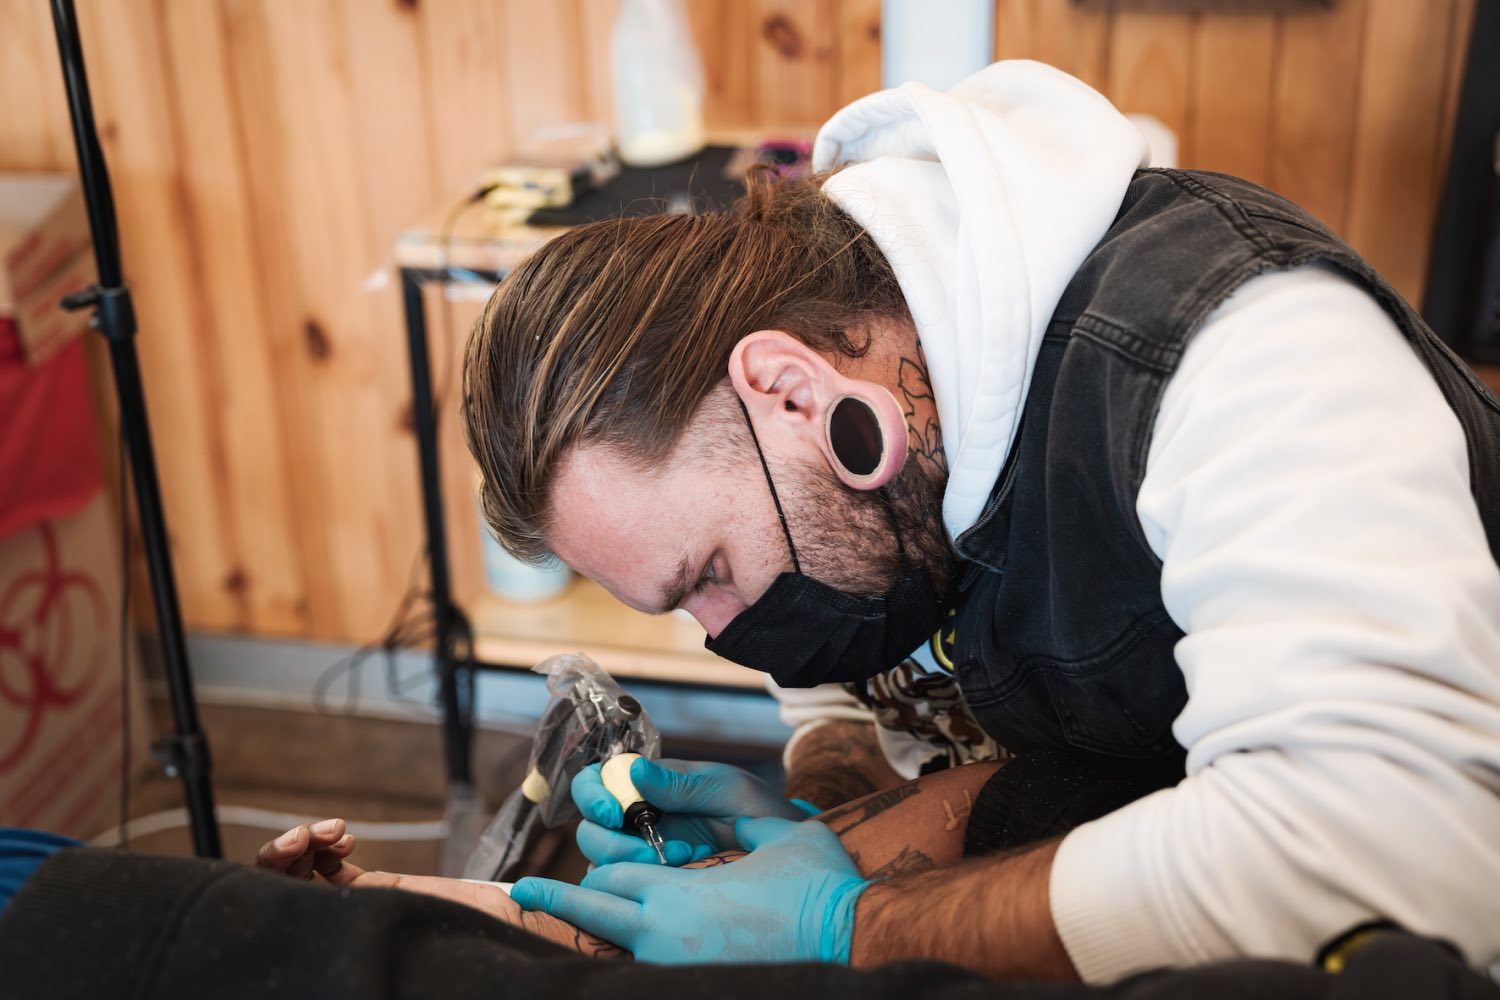 We talk tattoos and art with Chris Theunissen